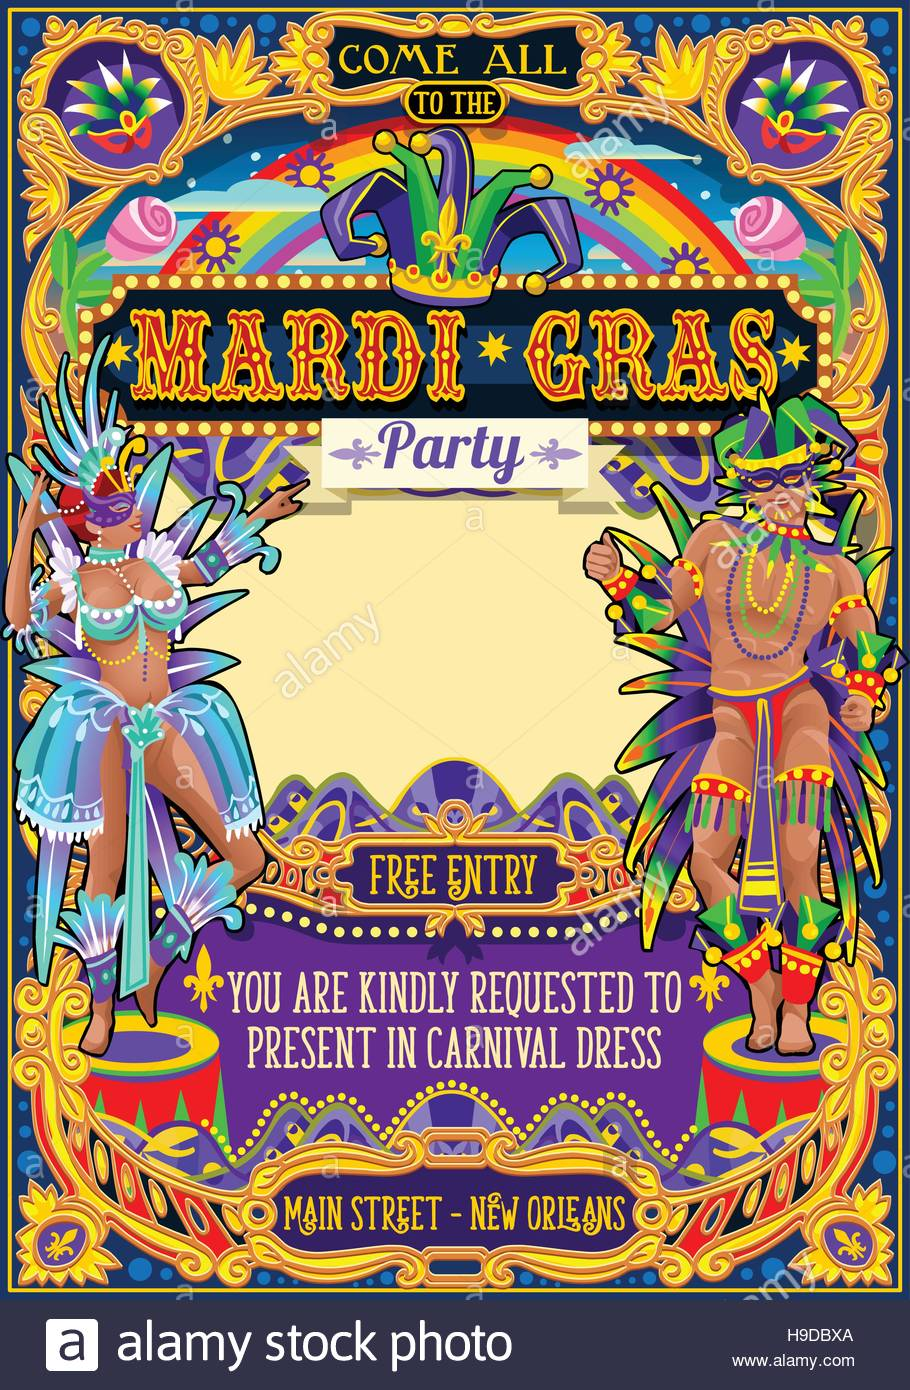 Mardi gras festival poster illustration new orleans night show mardi gras festival poster illustration new orleans night show carnival party parade masquerade invitation card template latin dance event with samb stopboris Images